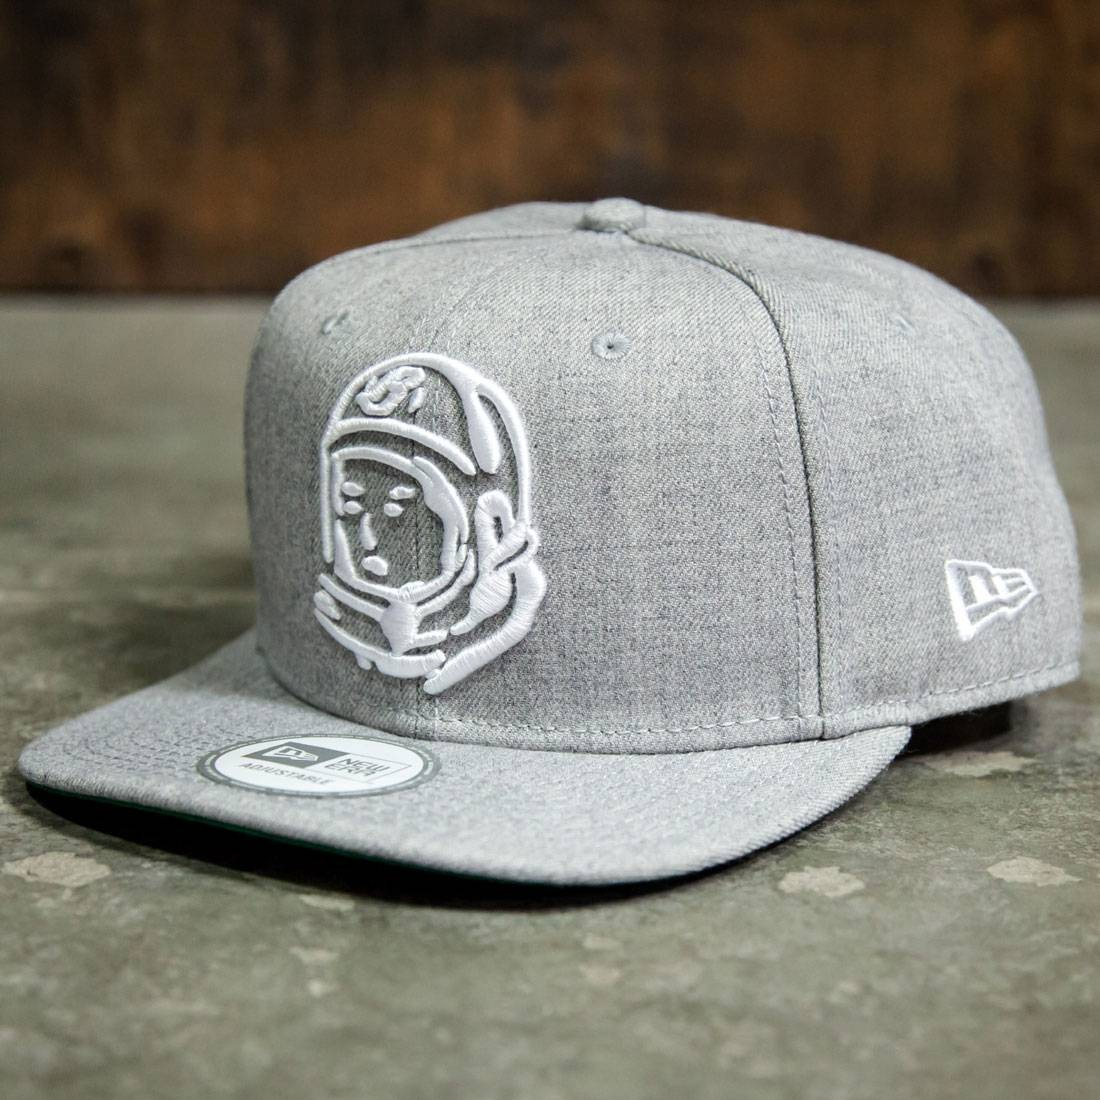 48efb1e5a1c Billionaire Boys Club Helmet Snapback Cap gray heather